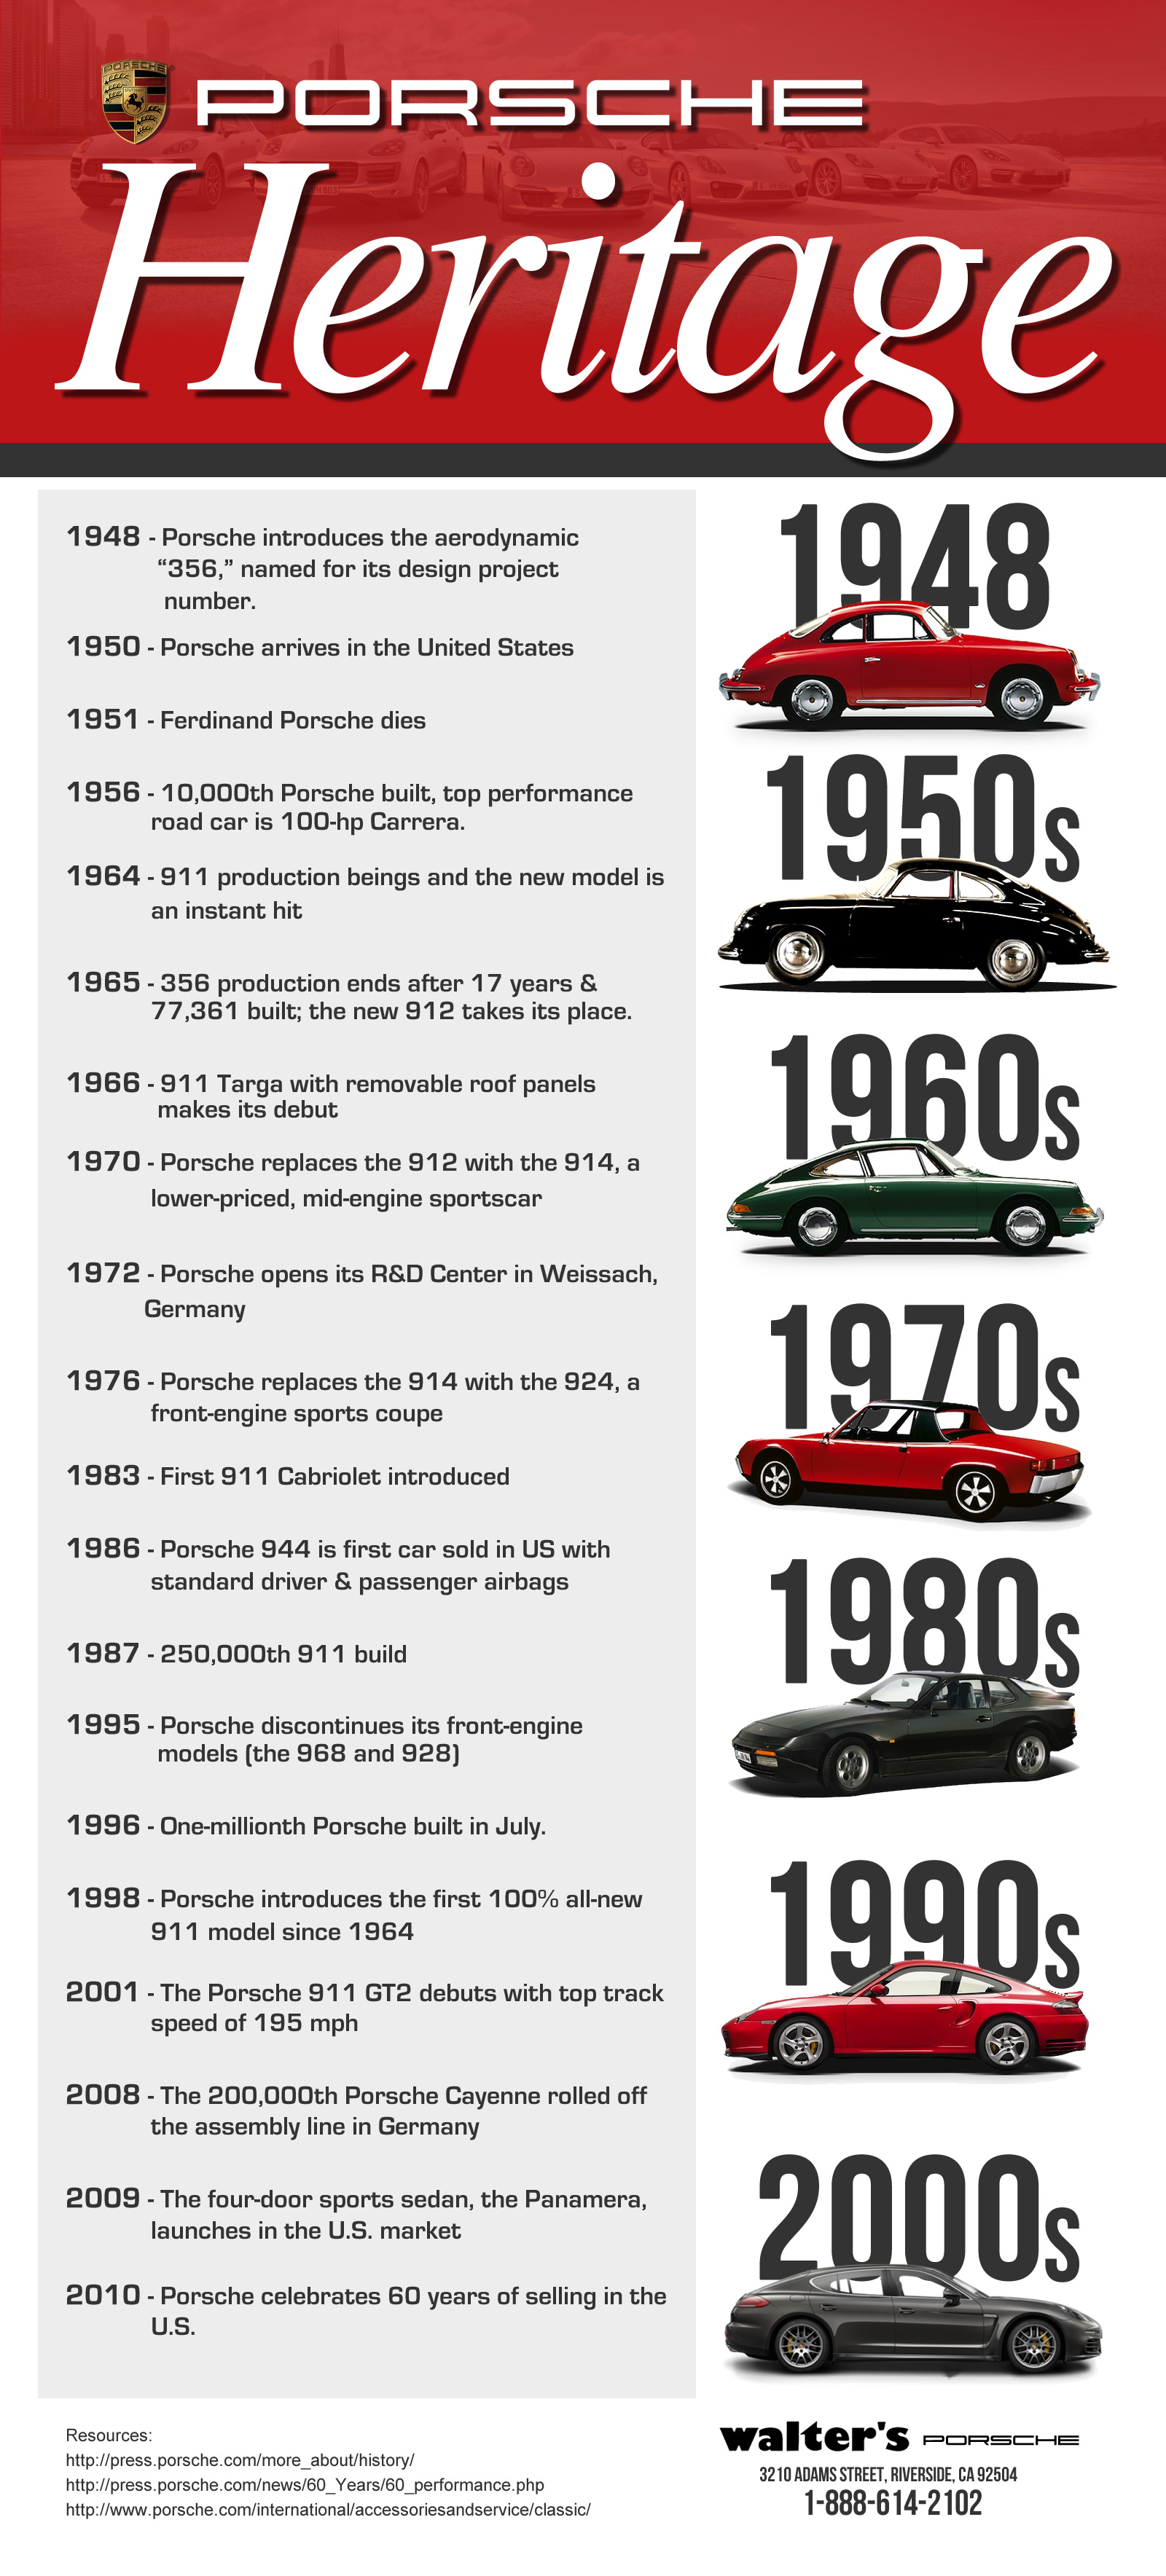 posche a history of success infographic walter s porsche